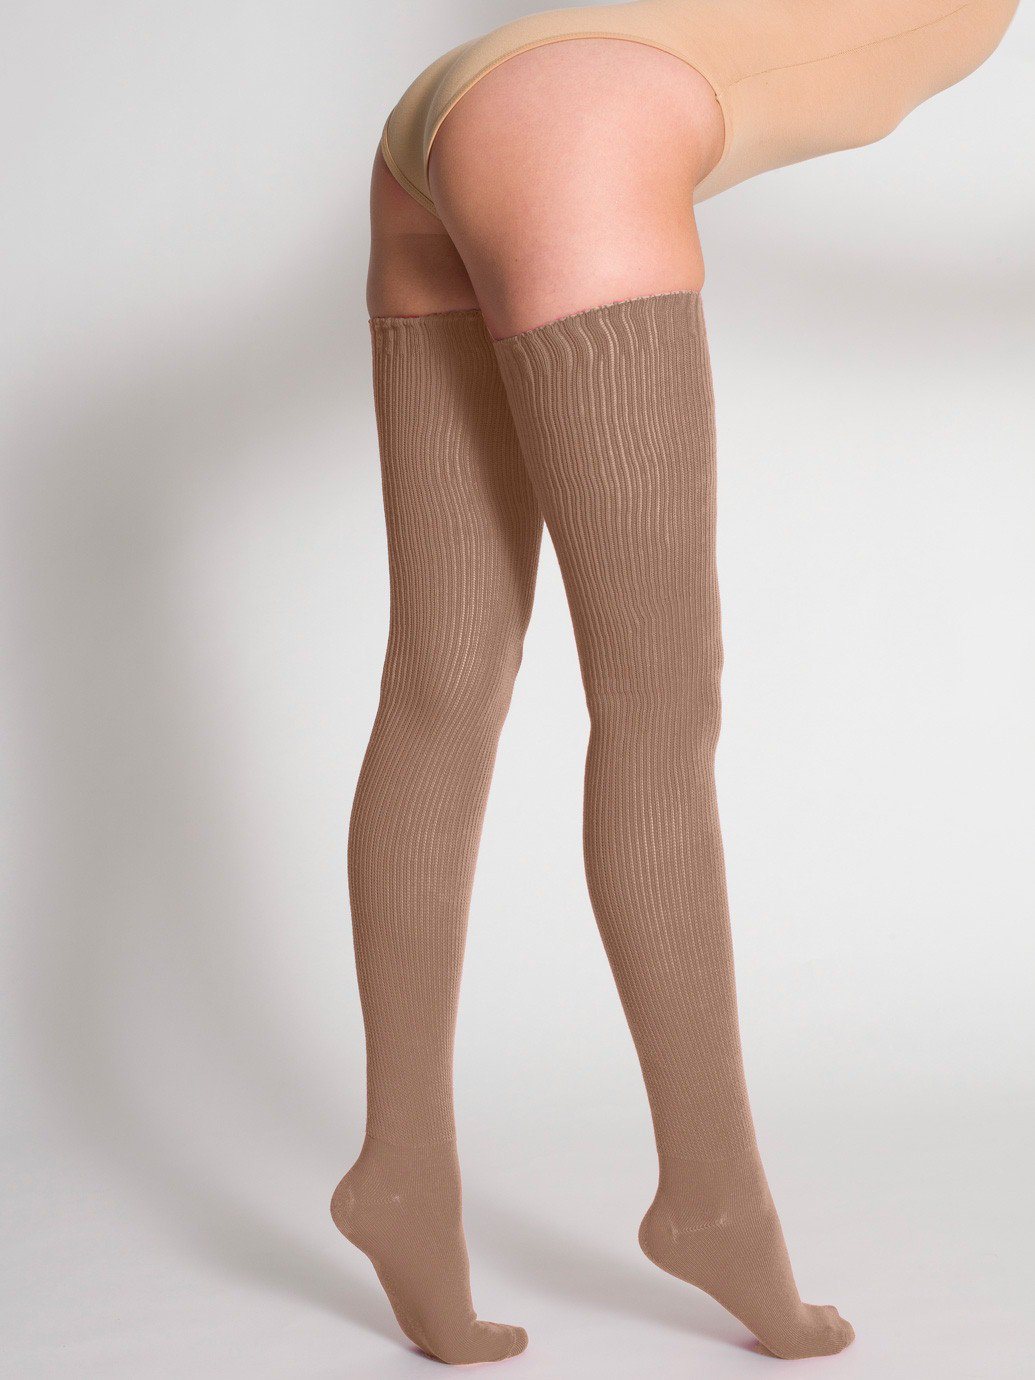 Take your style all the way up to your thighs with a pair of thigh high socks that will have everyone asking where you got them from. Why stop at high knee socks when you can go over the top with thigh high tights instead?!